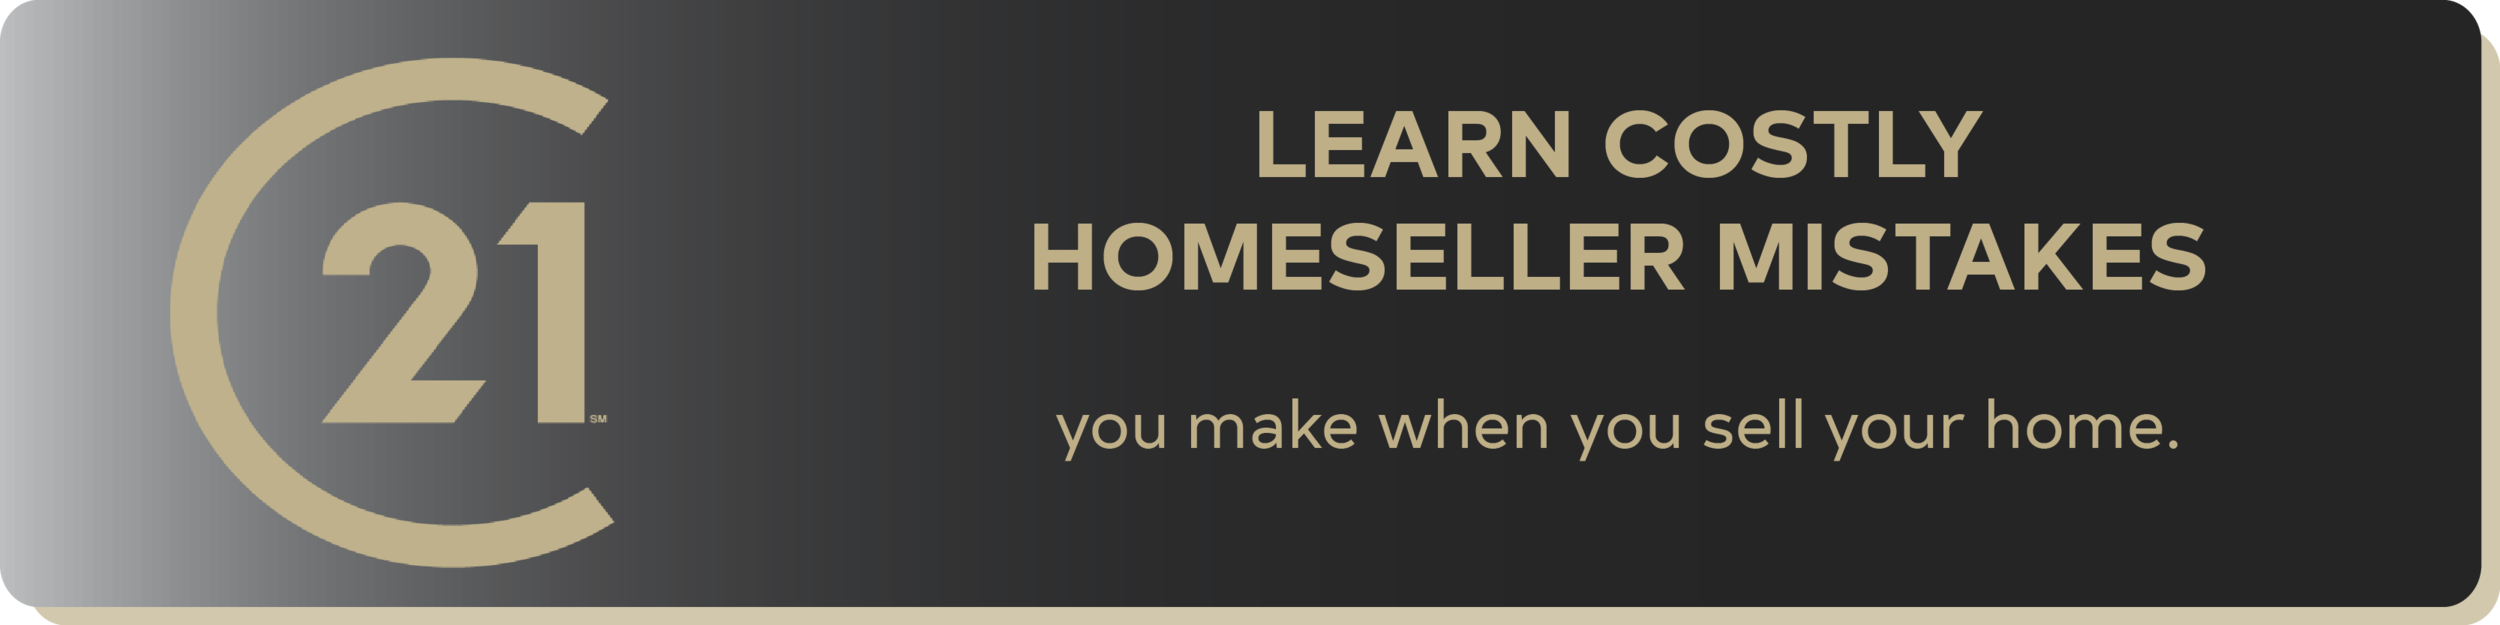 homeseller mistakes.png